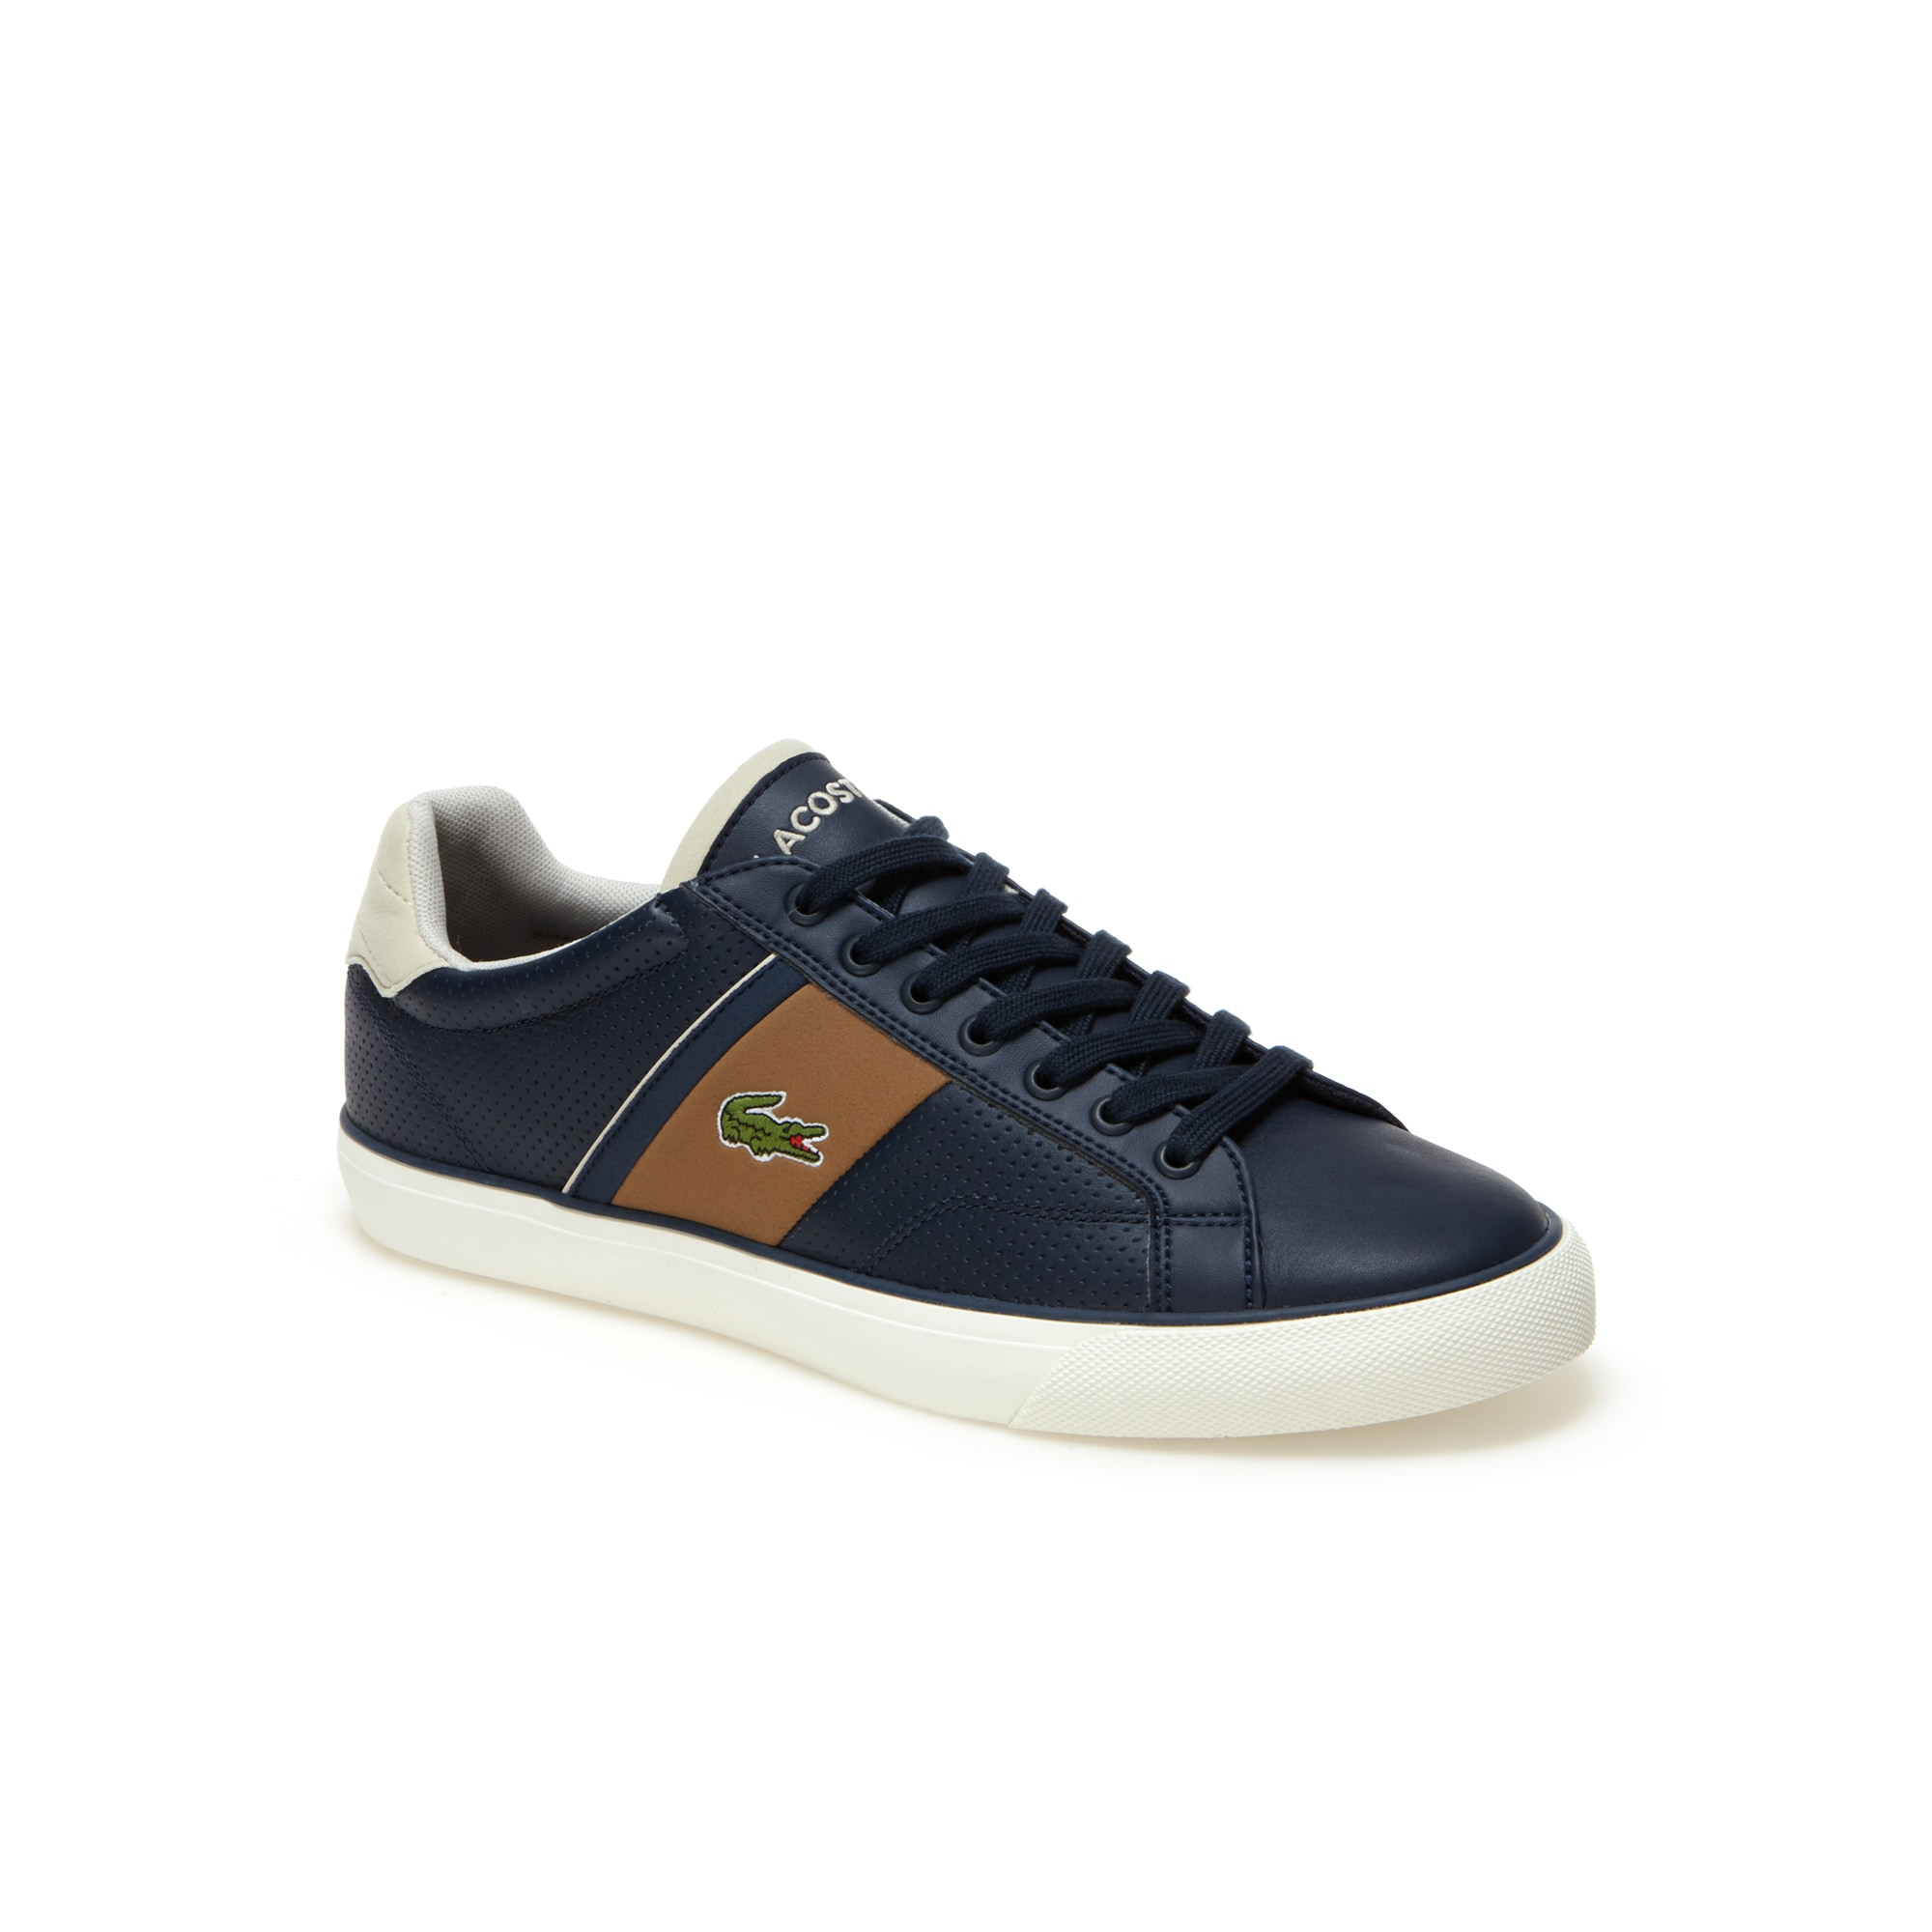 Mens Fairlead Leather Trainers 46000 AED 46000 AED Colour  NAVYLIGHT  BROWN